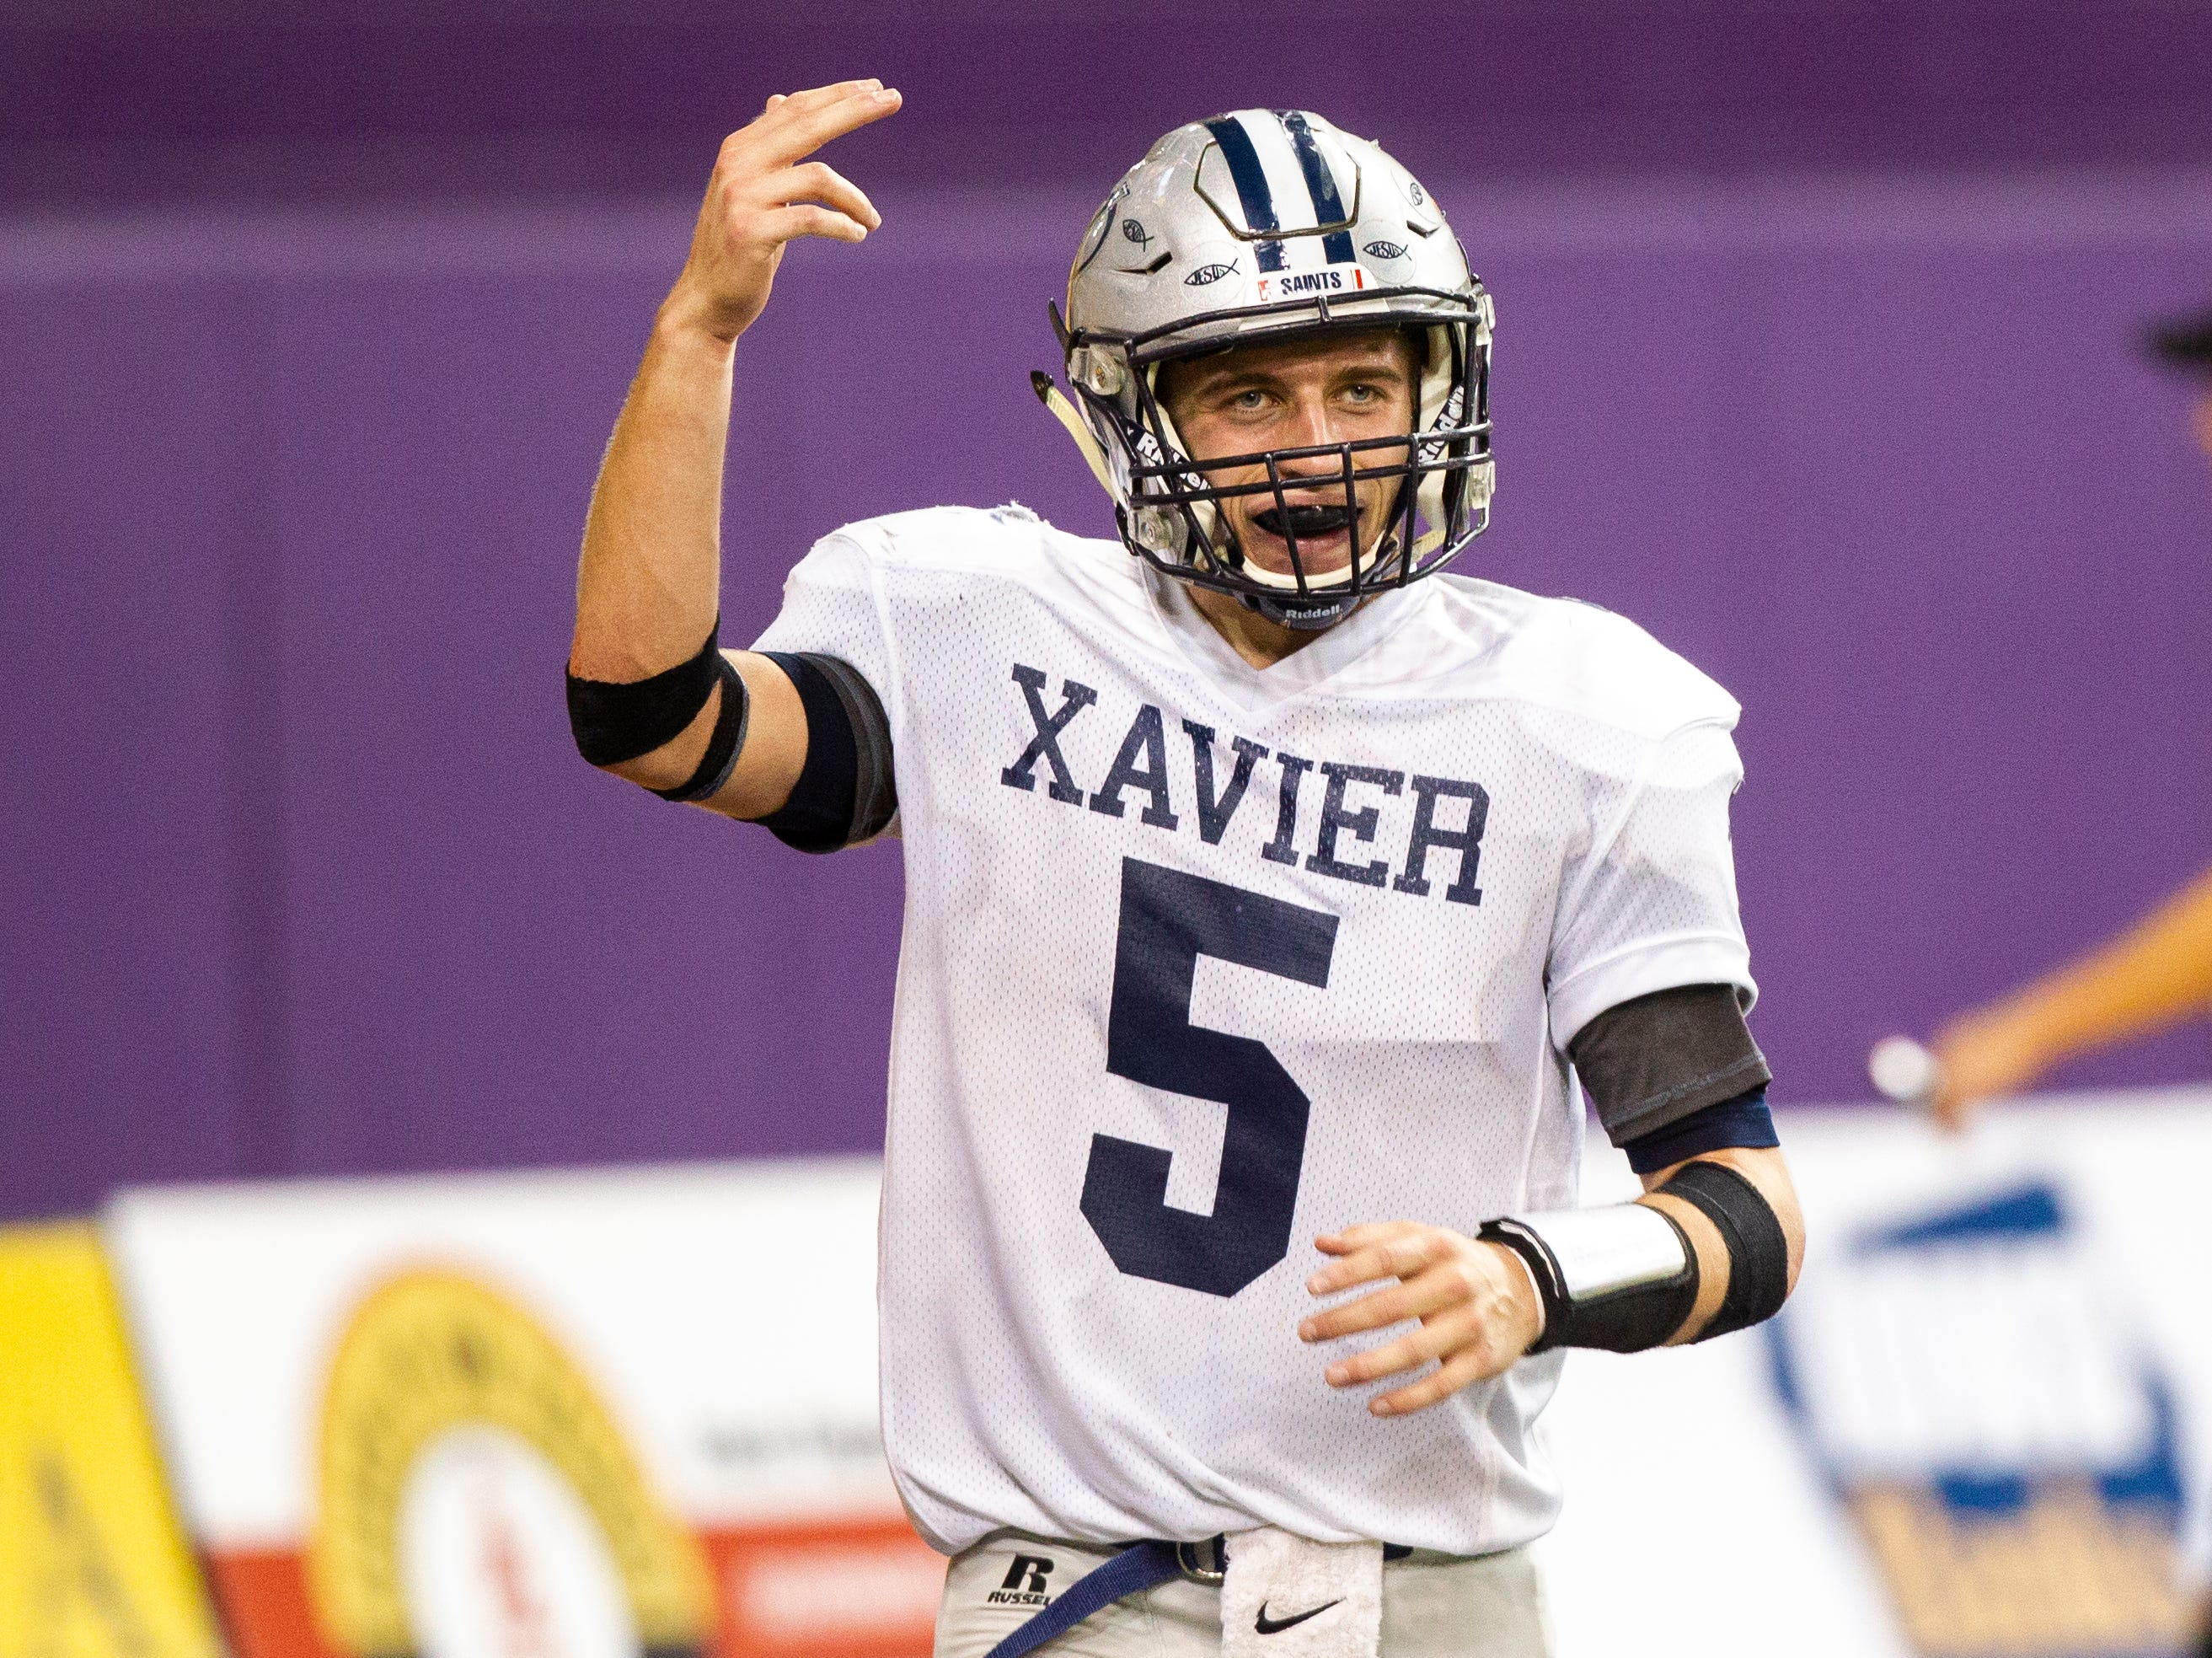 Cedar Rapids Xavier's Quinn Schulte (5) celebrates after scoring a touchdown on a quarterback sneak during a Class 3A semi finals on Thursday, Nov. 8, 2018, at the UNI-Dome in Cedar Falls.